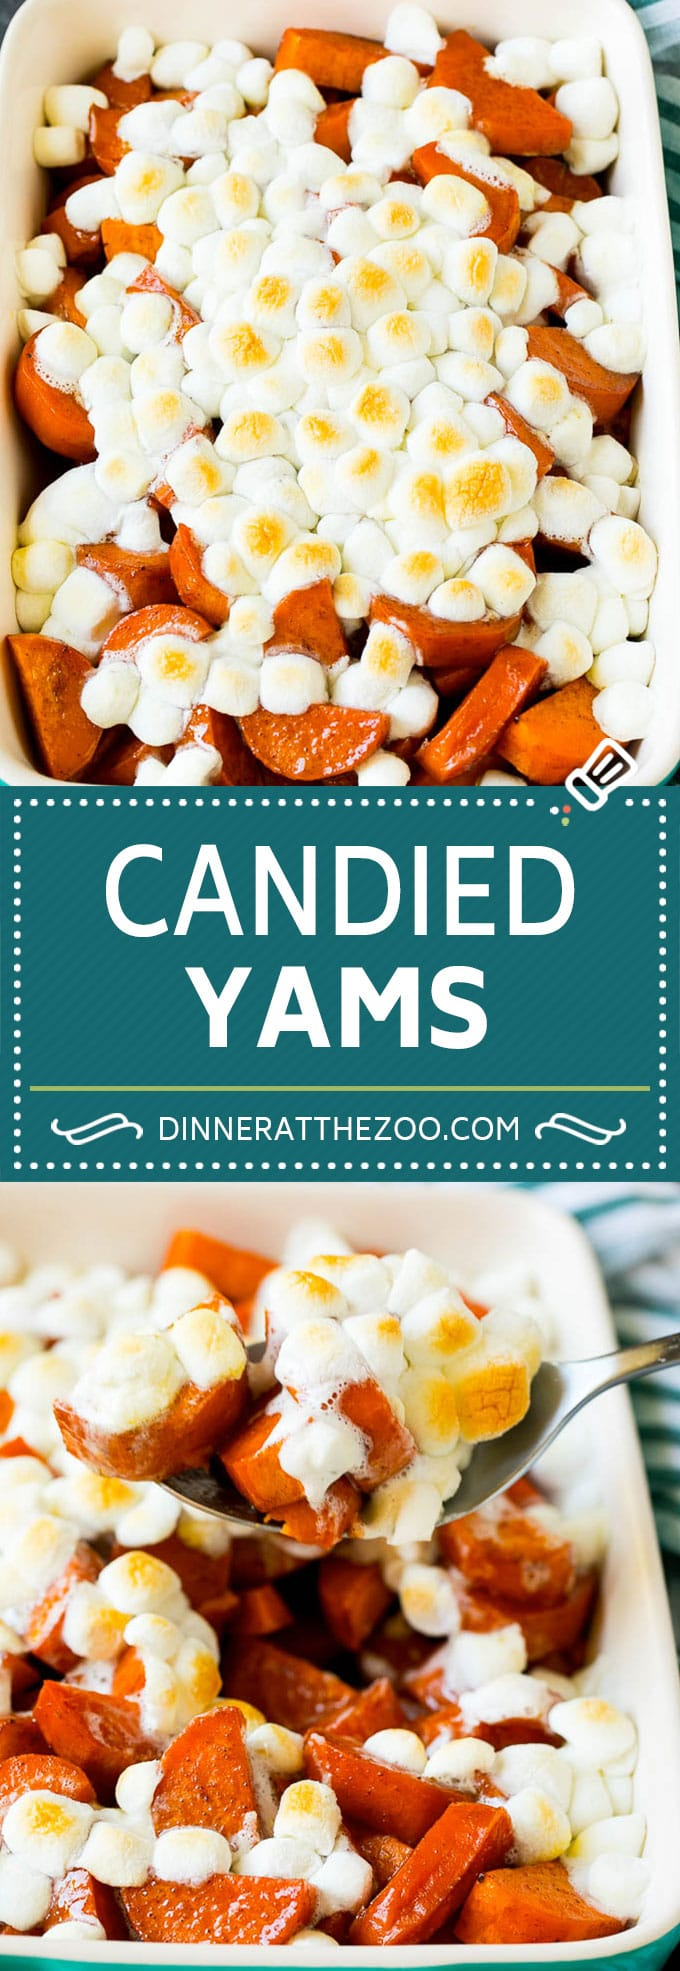 These candied yams are sweet potatoes tossed in brown sugar, butter and spices, then baked until caramelized.